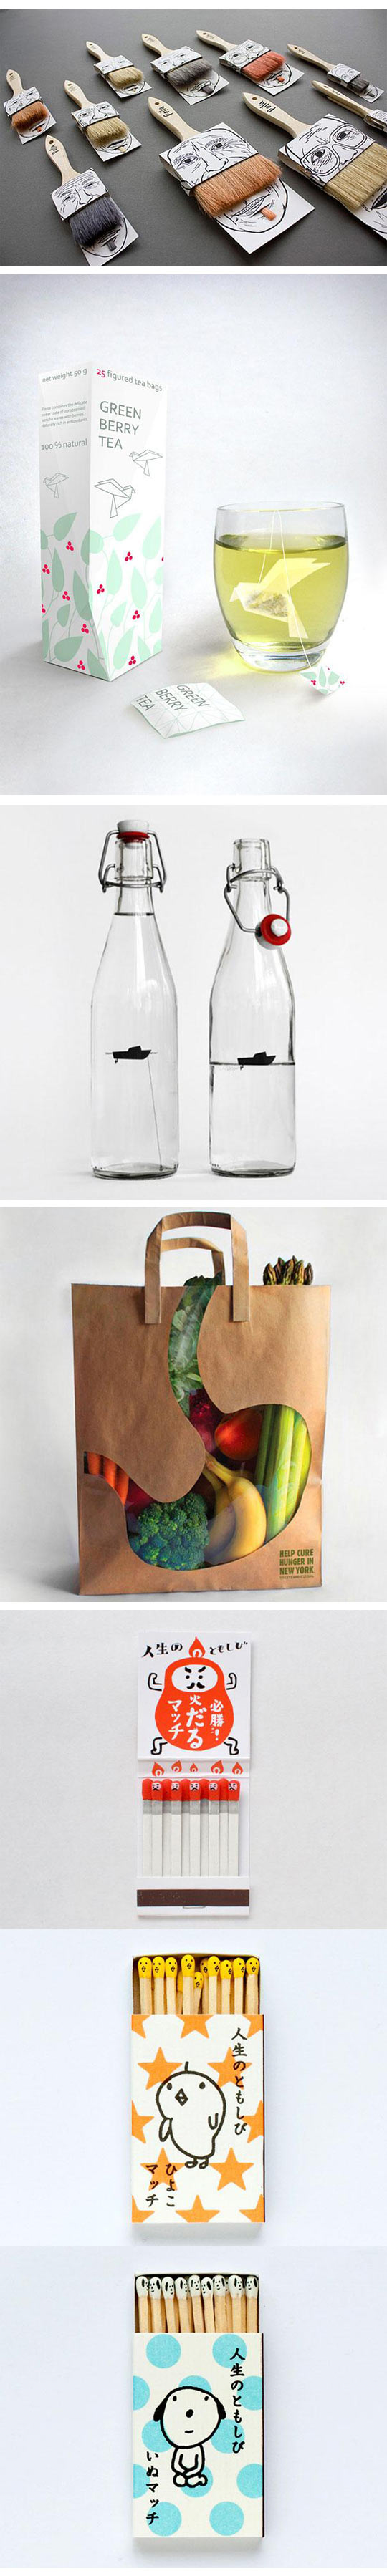 cool-packaging-products-design-creative-moustache